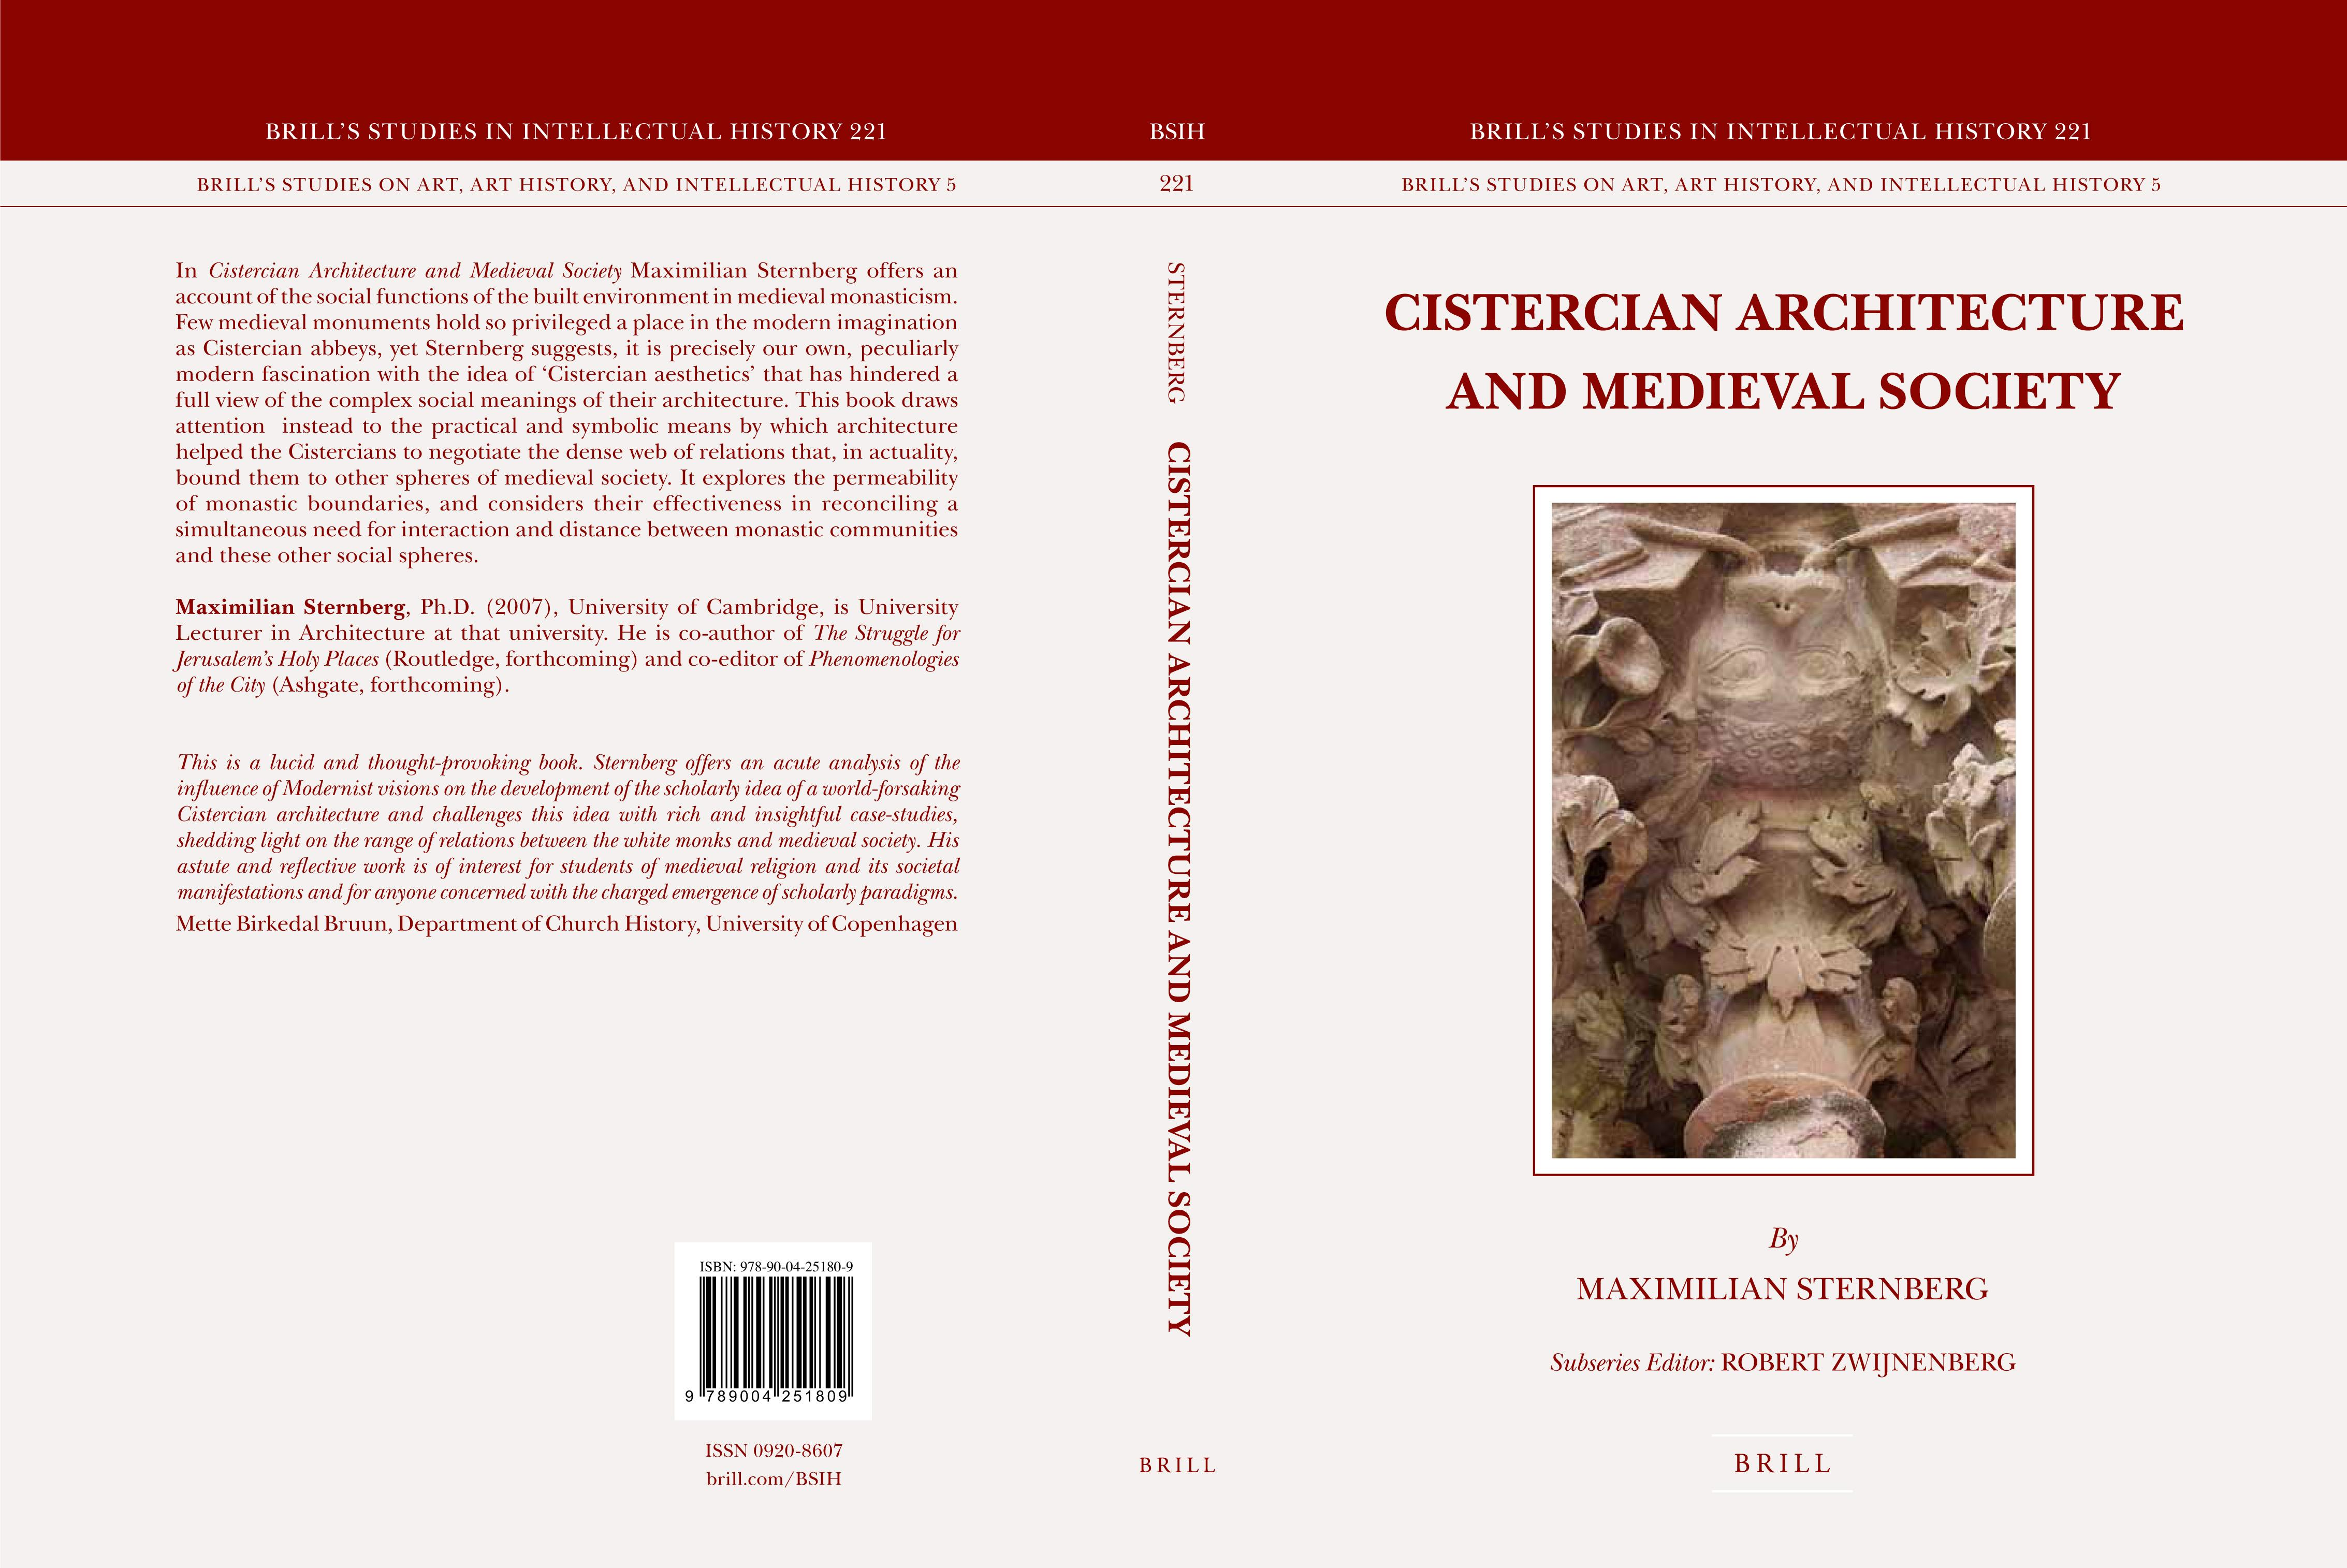 'Cistercian Architecture and Medieval Society': a new book by Dr Maximilian Sternberg